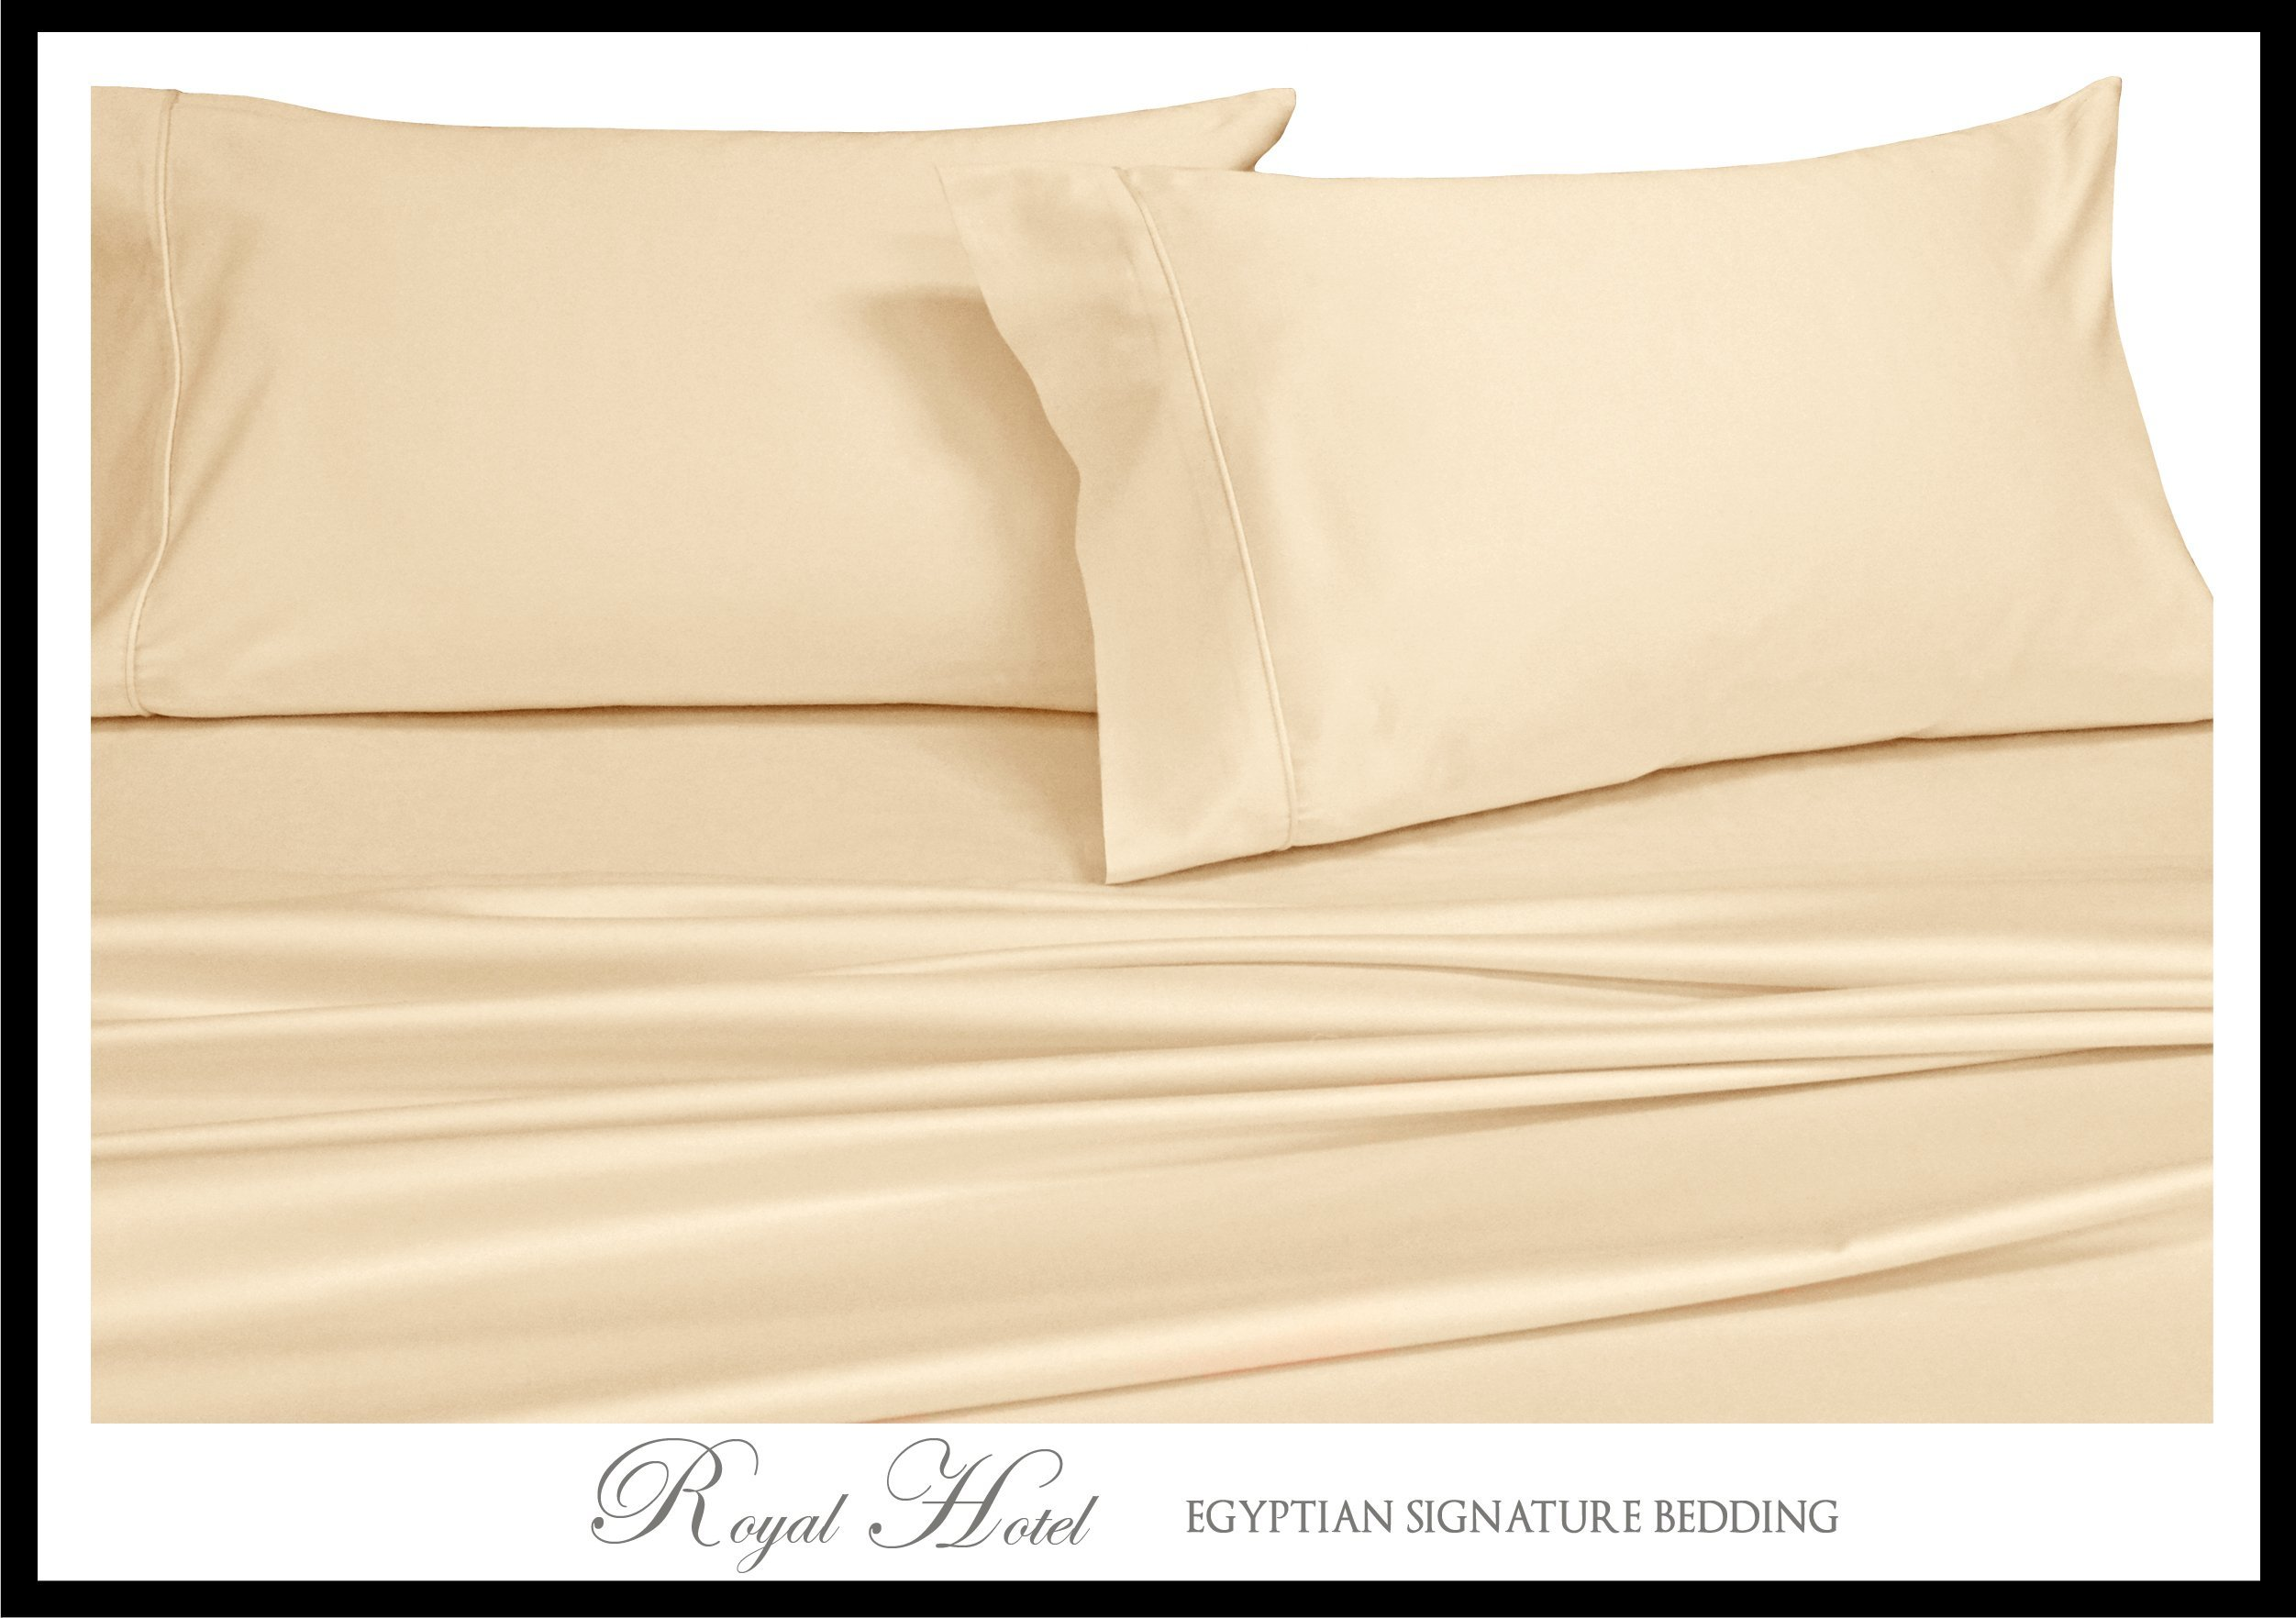 Top-Split-King: Adjustable King Bed Sheets 4PC Solid Ivory 100% Cotton 600-Thread-Count, Deep Pocket